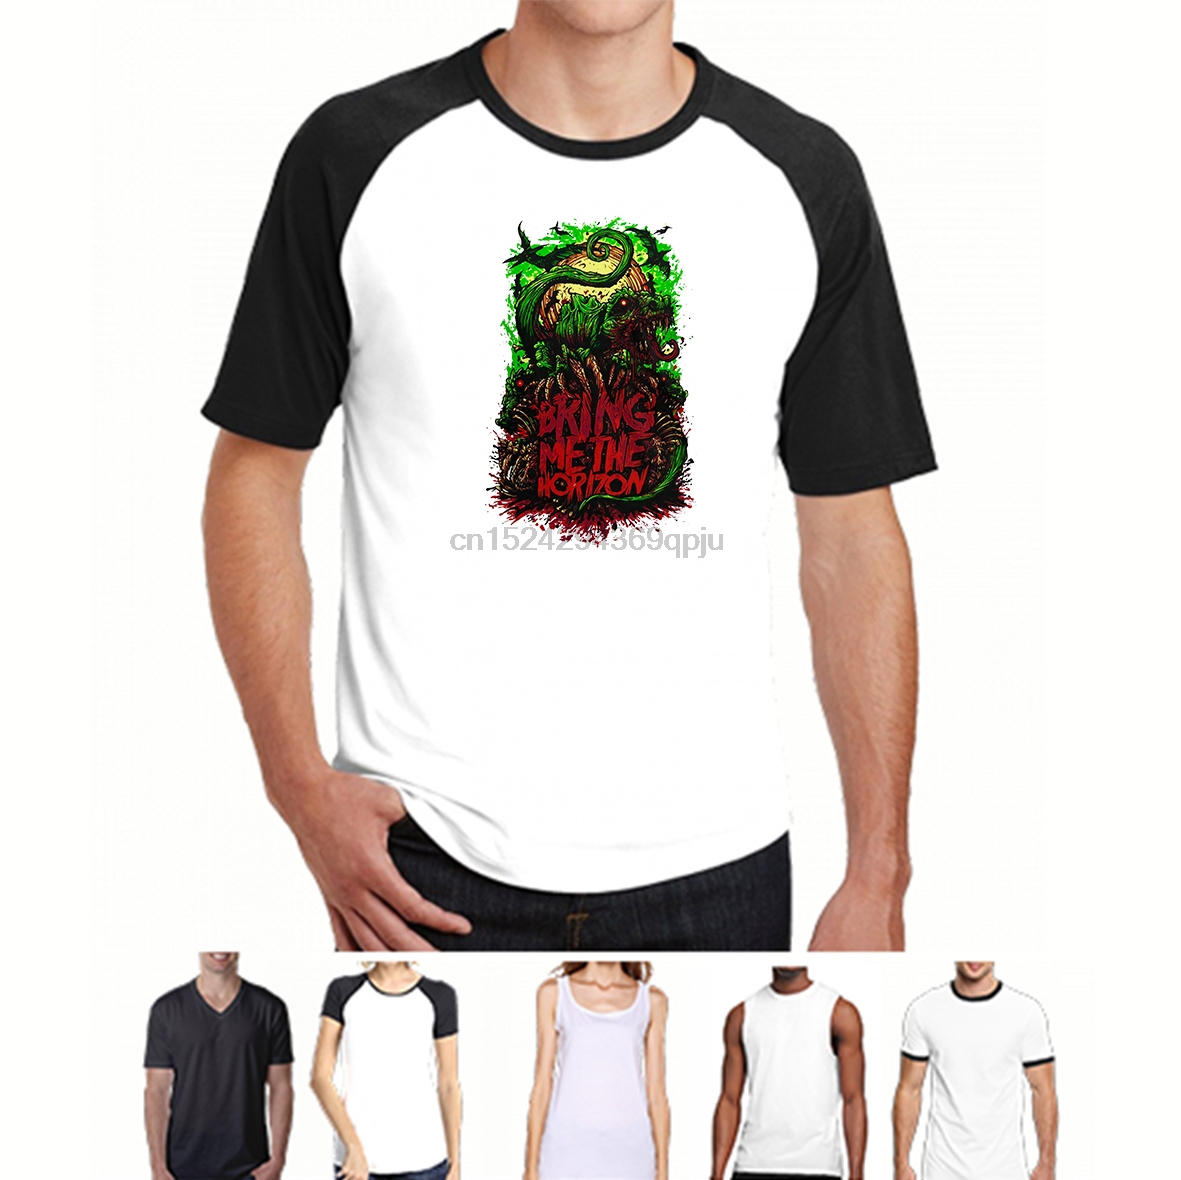 Bring Me The Horizon Dinosaur White T Shirt New Official BMTH